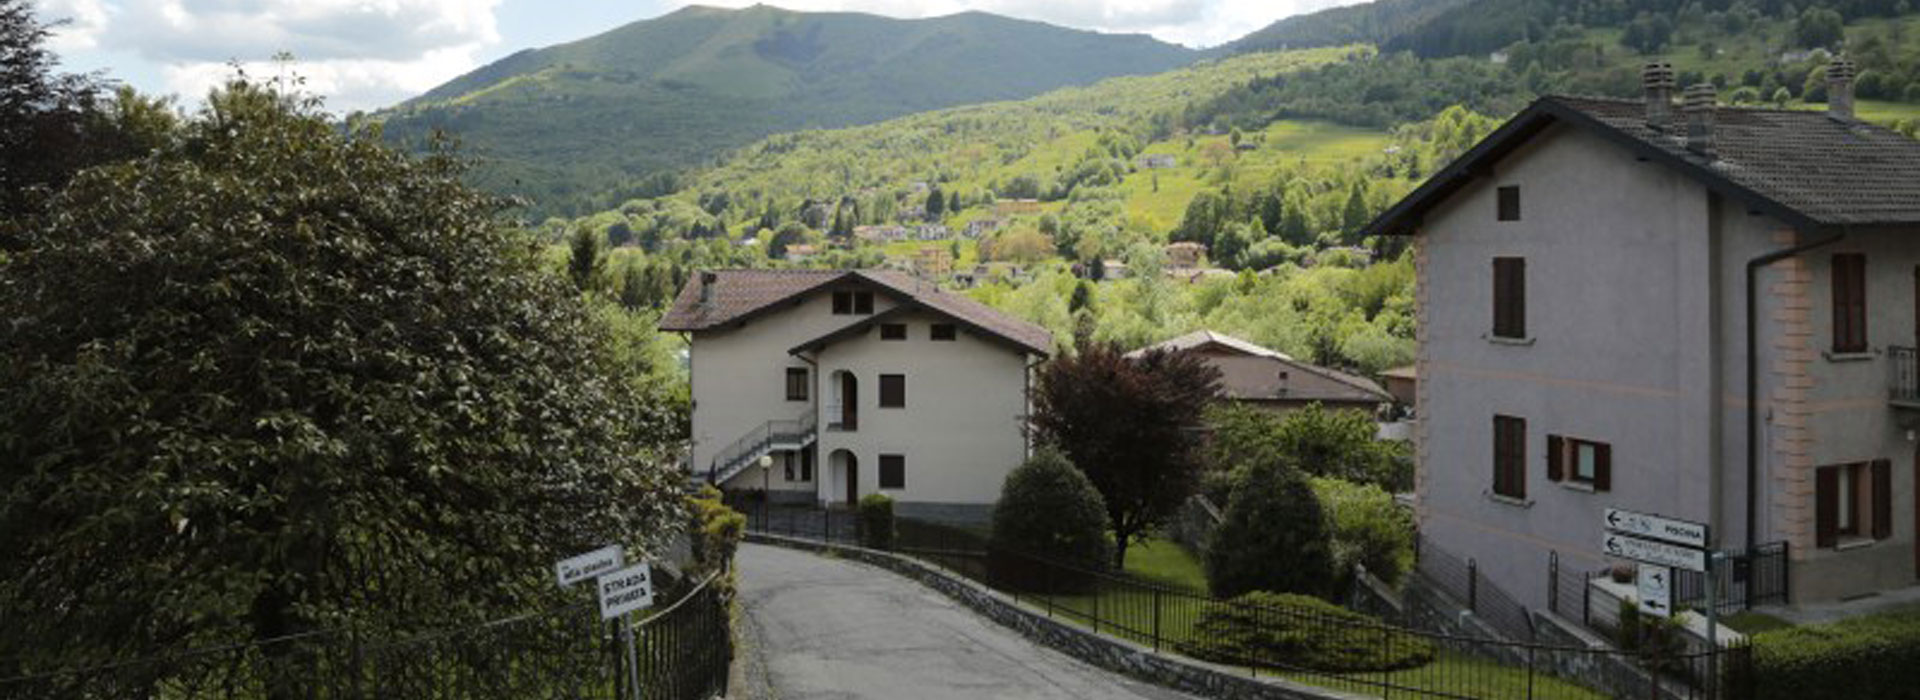 valle intelvi como